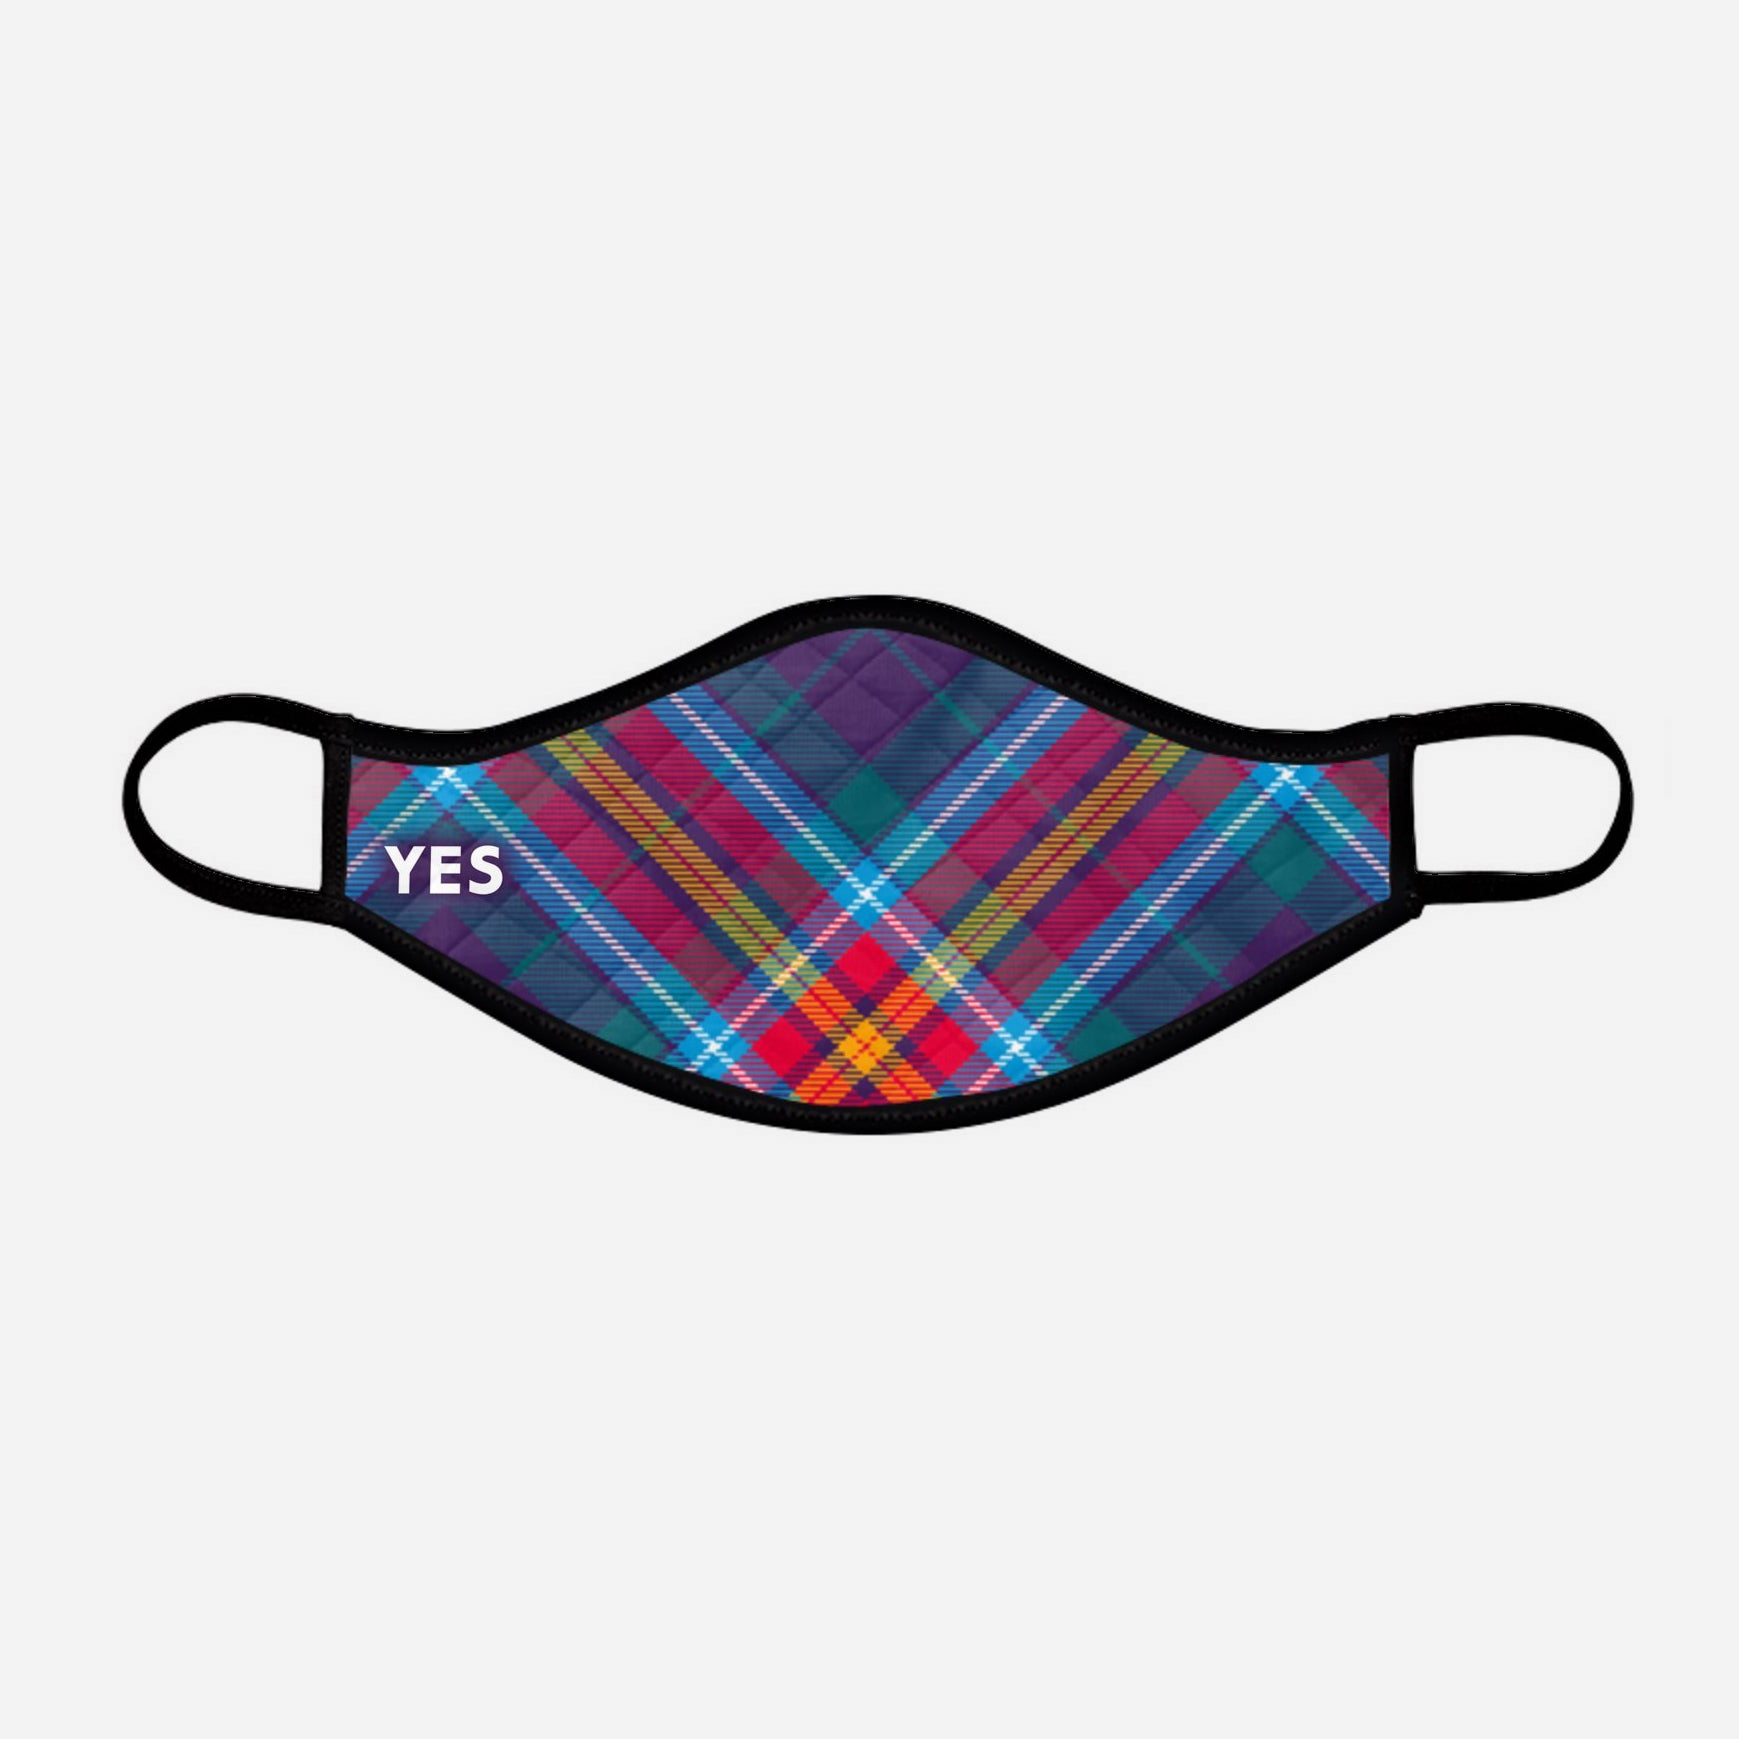 YES IT'S TIME - Alba Gu Brath - Pro EU - European Union Contoured Tartan - Scottish Saltire - Face Mask - small